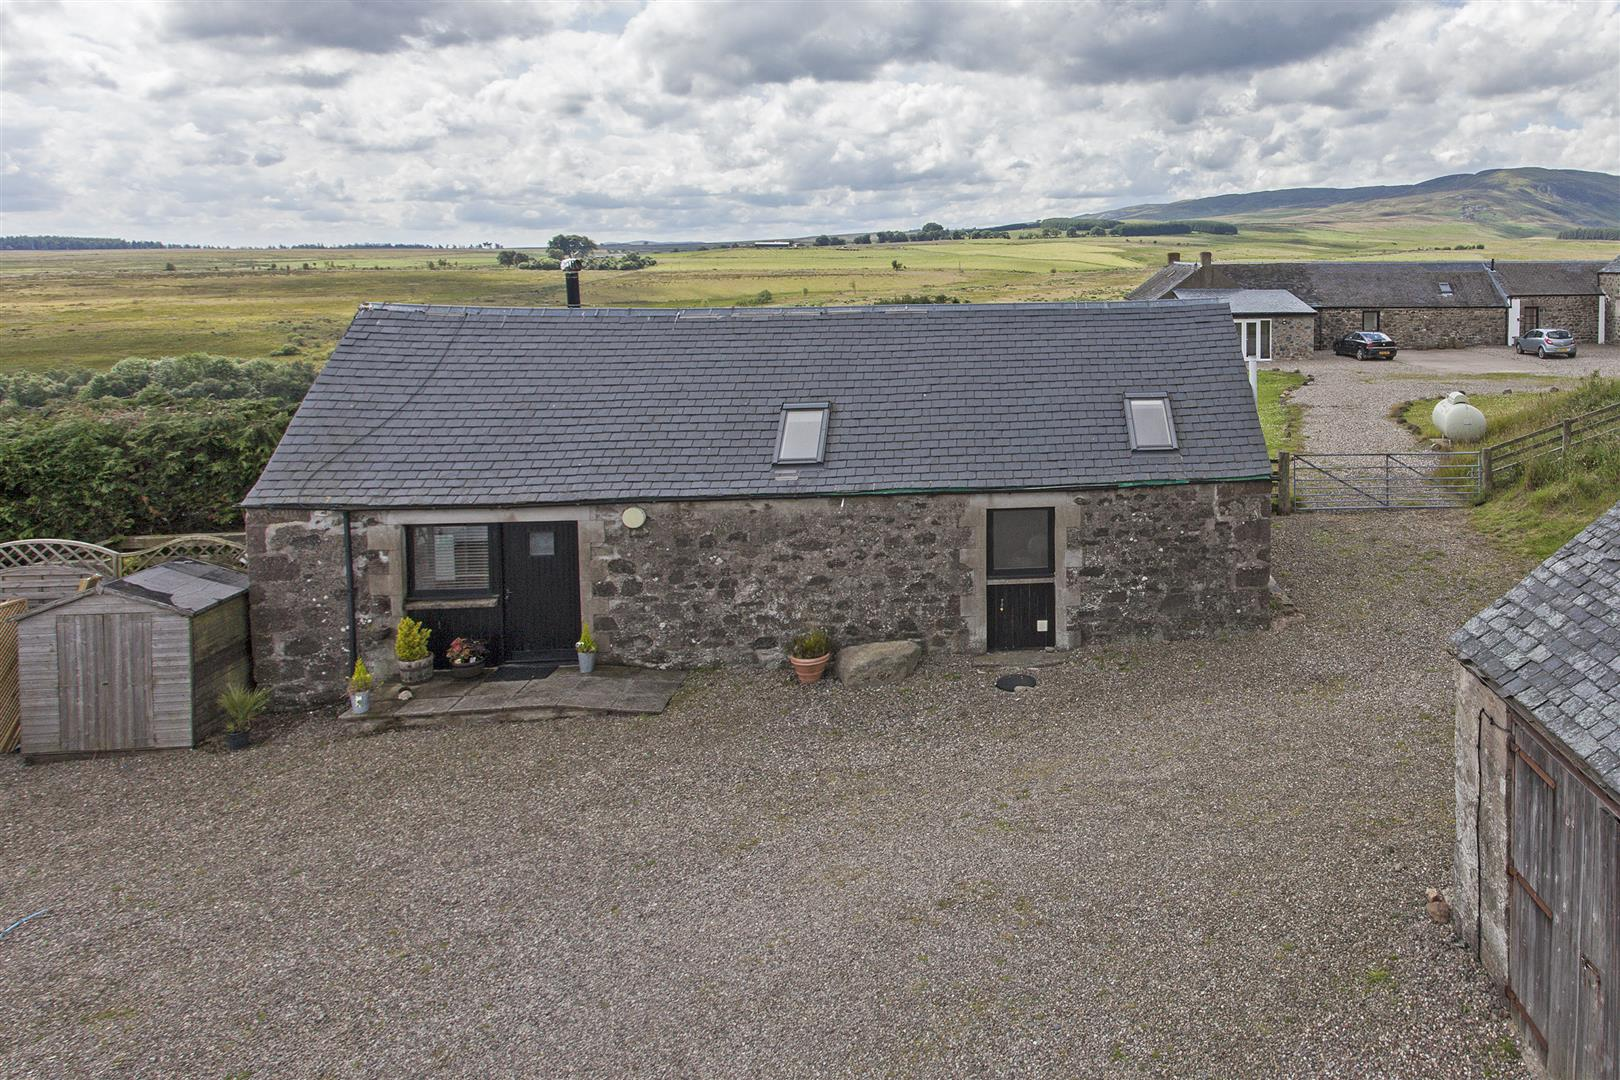 Shenval Bothy, Little Glenshee, Bankfoot, Perth, Perthshire, PH1 4DP, UK